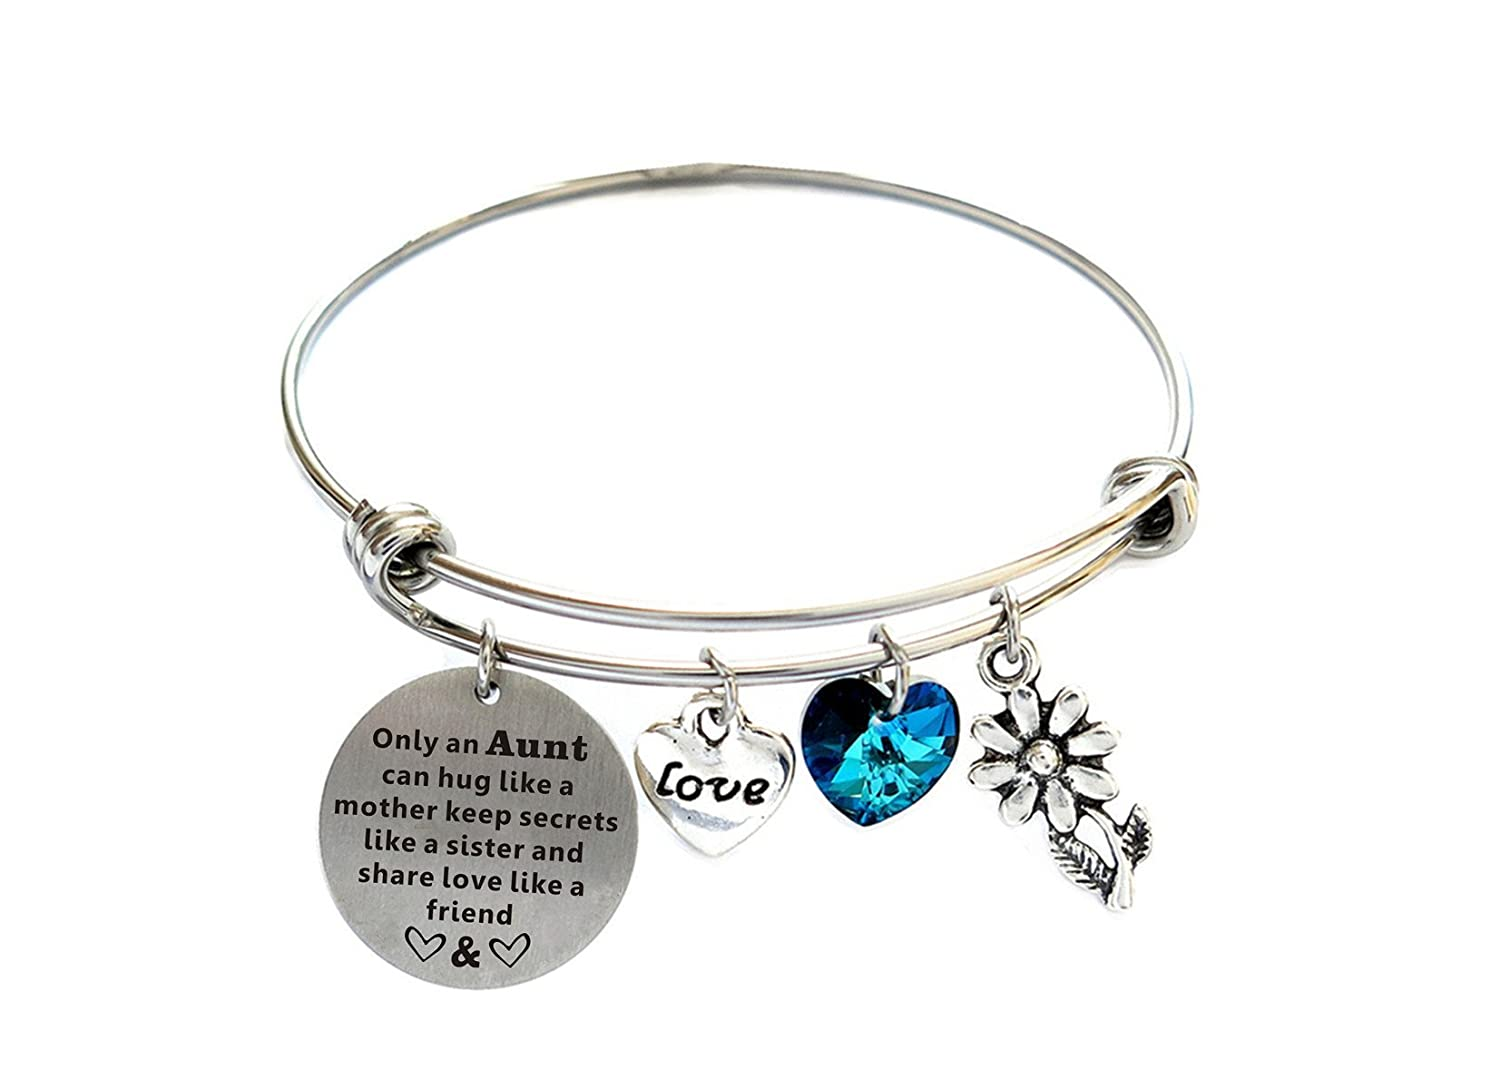 Christmas Gifts For Aunt Stainless Steel Expandable Bangle Bracelet With Blue Love Crystal Charm Aunt Gifts From Niece Mother's Day Gifts For Aunt